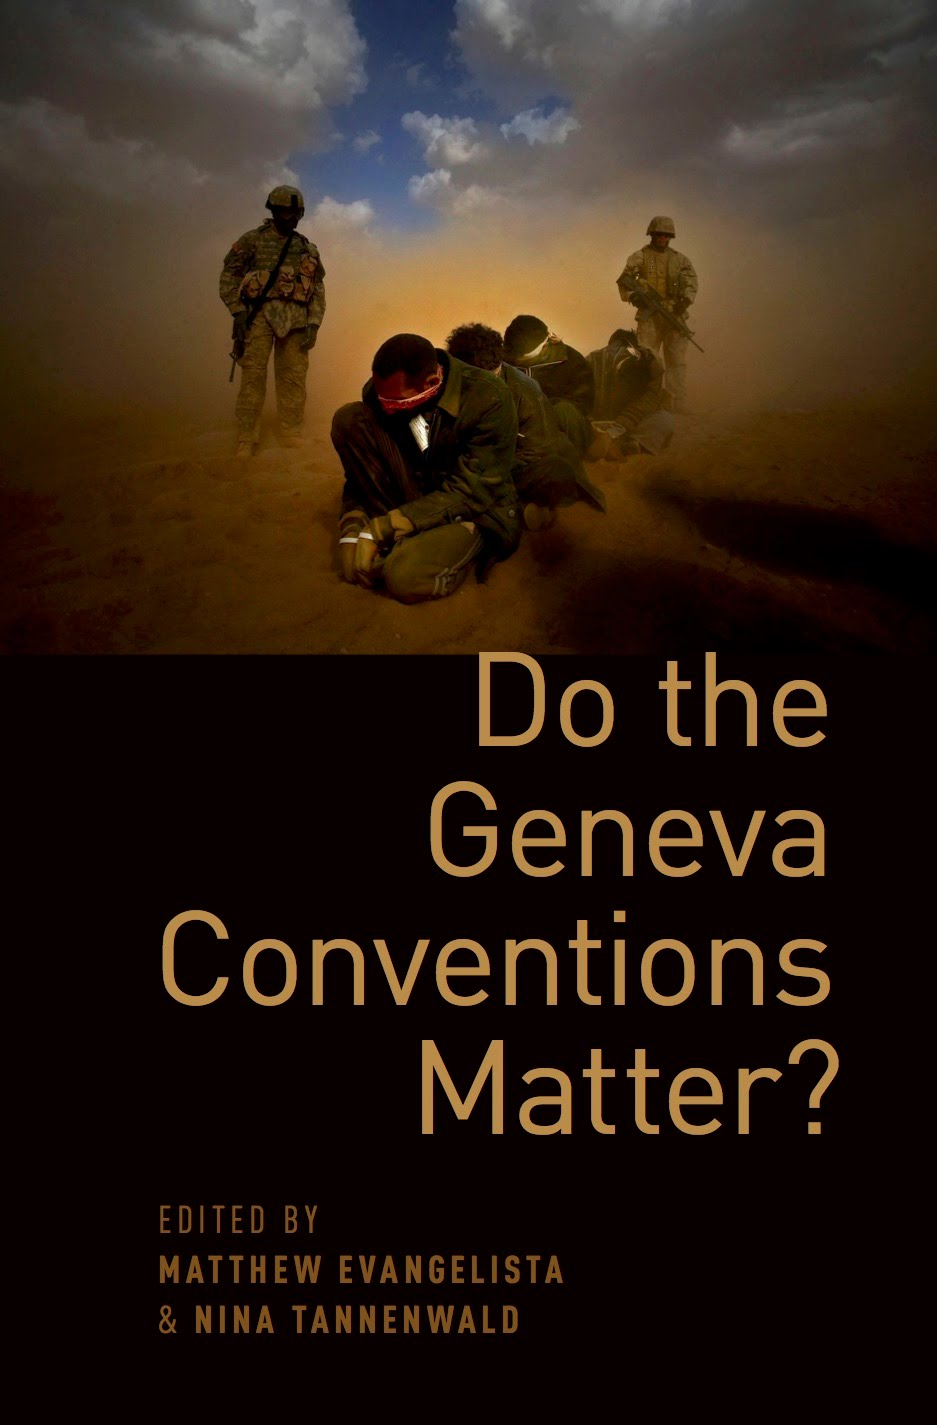 https://global.oup.com/academic/product/do-the-geneva-conventions-matter-9780199379781?cc=us&lang=en&